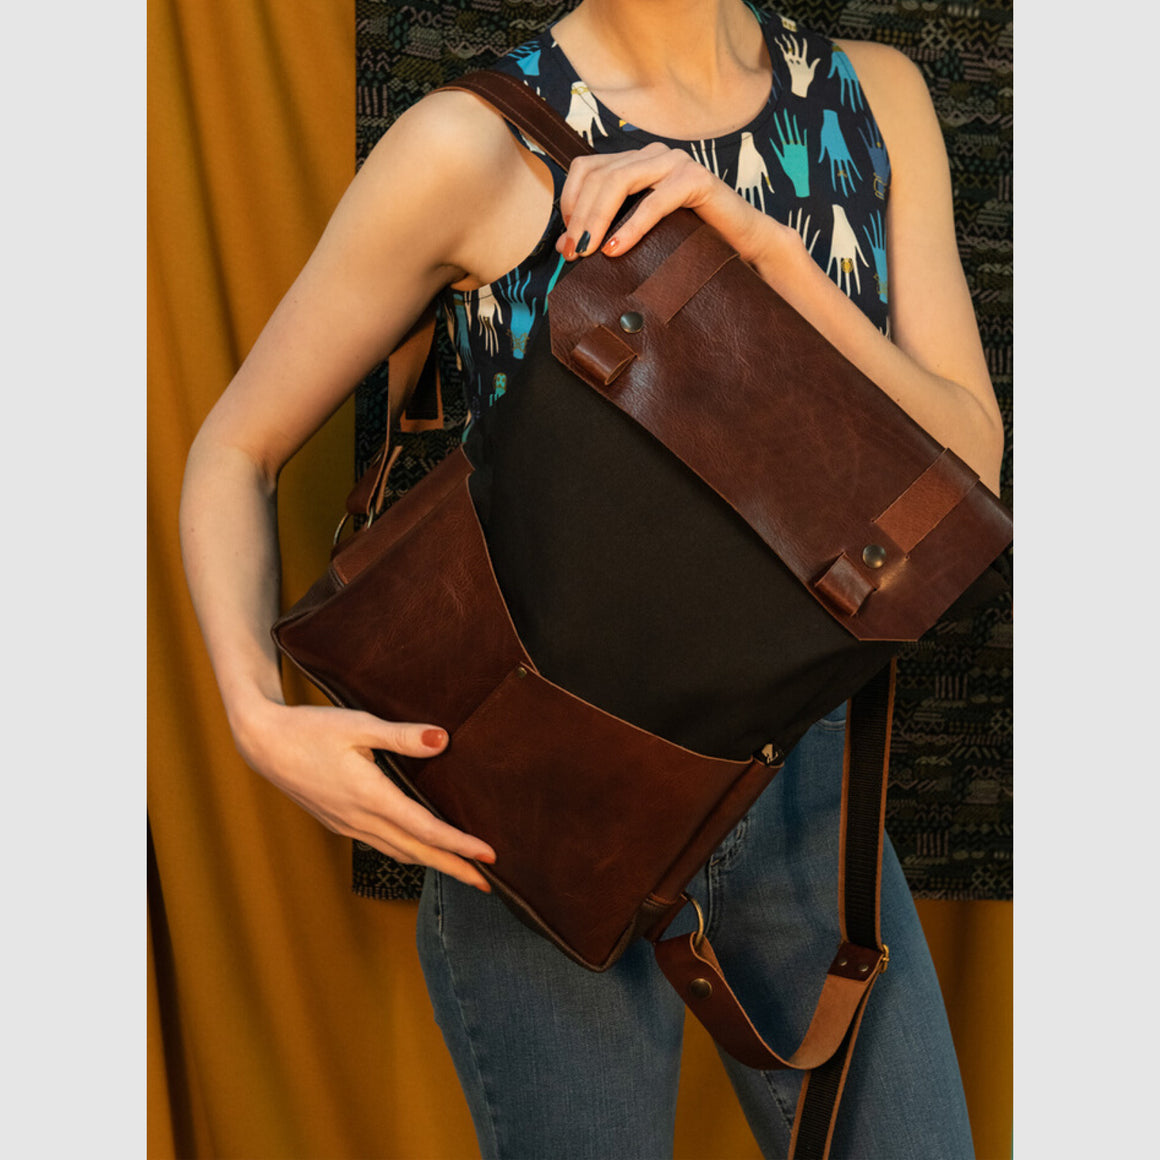 Stone Ridge - Handcrafted Leather Backpack / Crossbody Bag - Sold by Chic & Basta